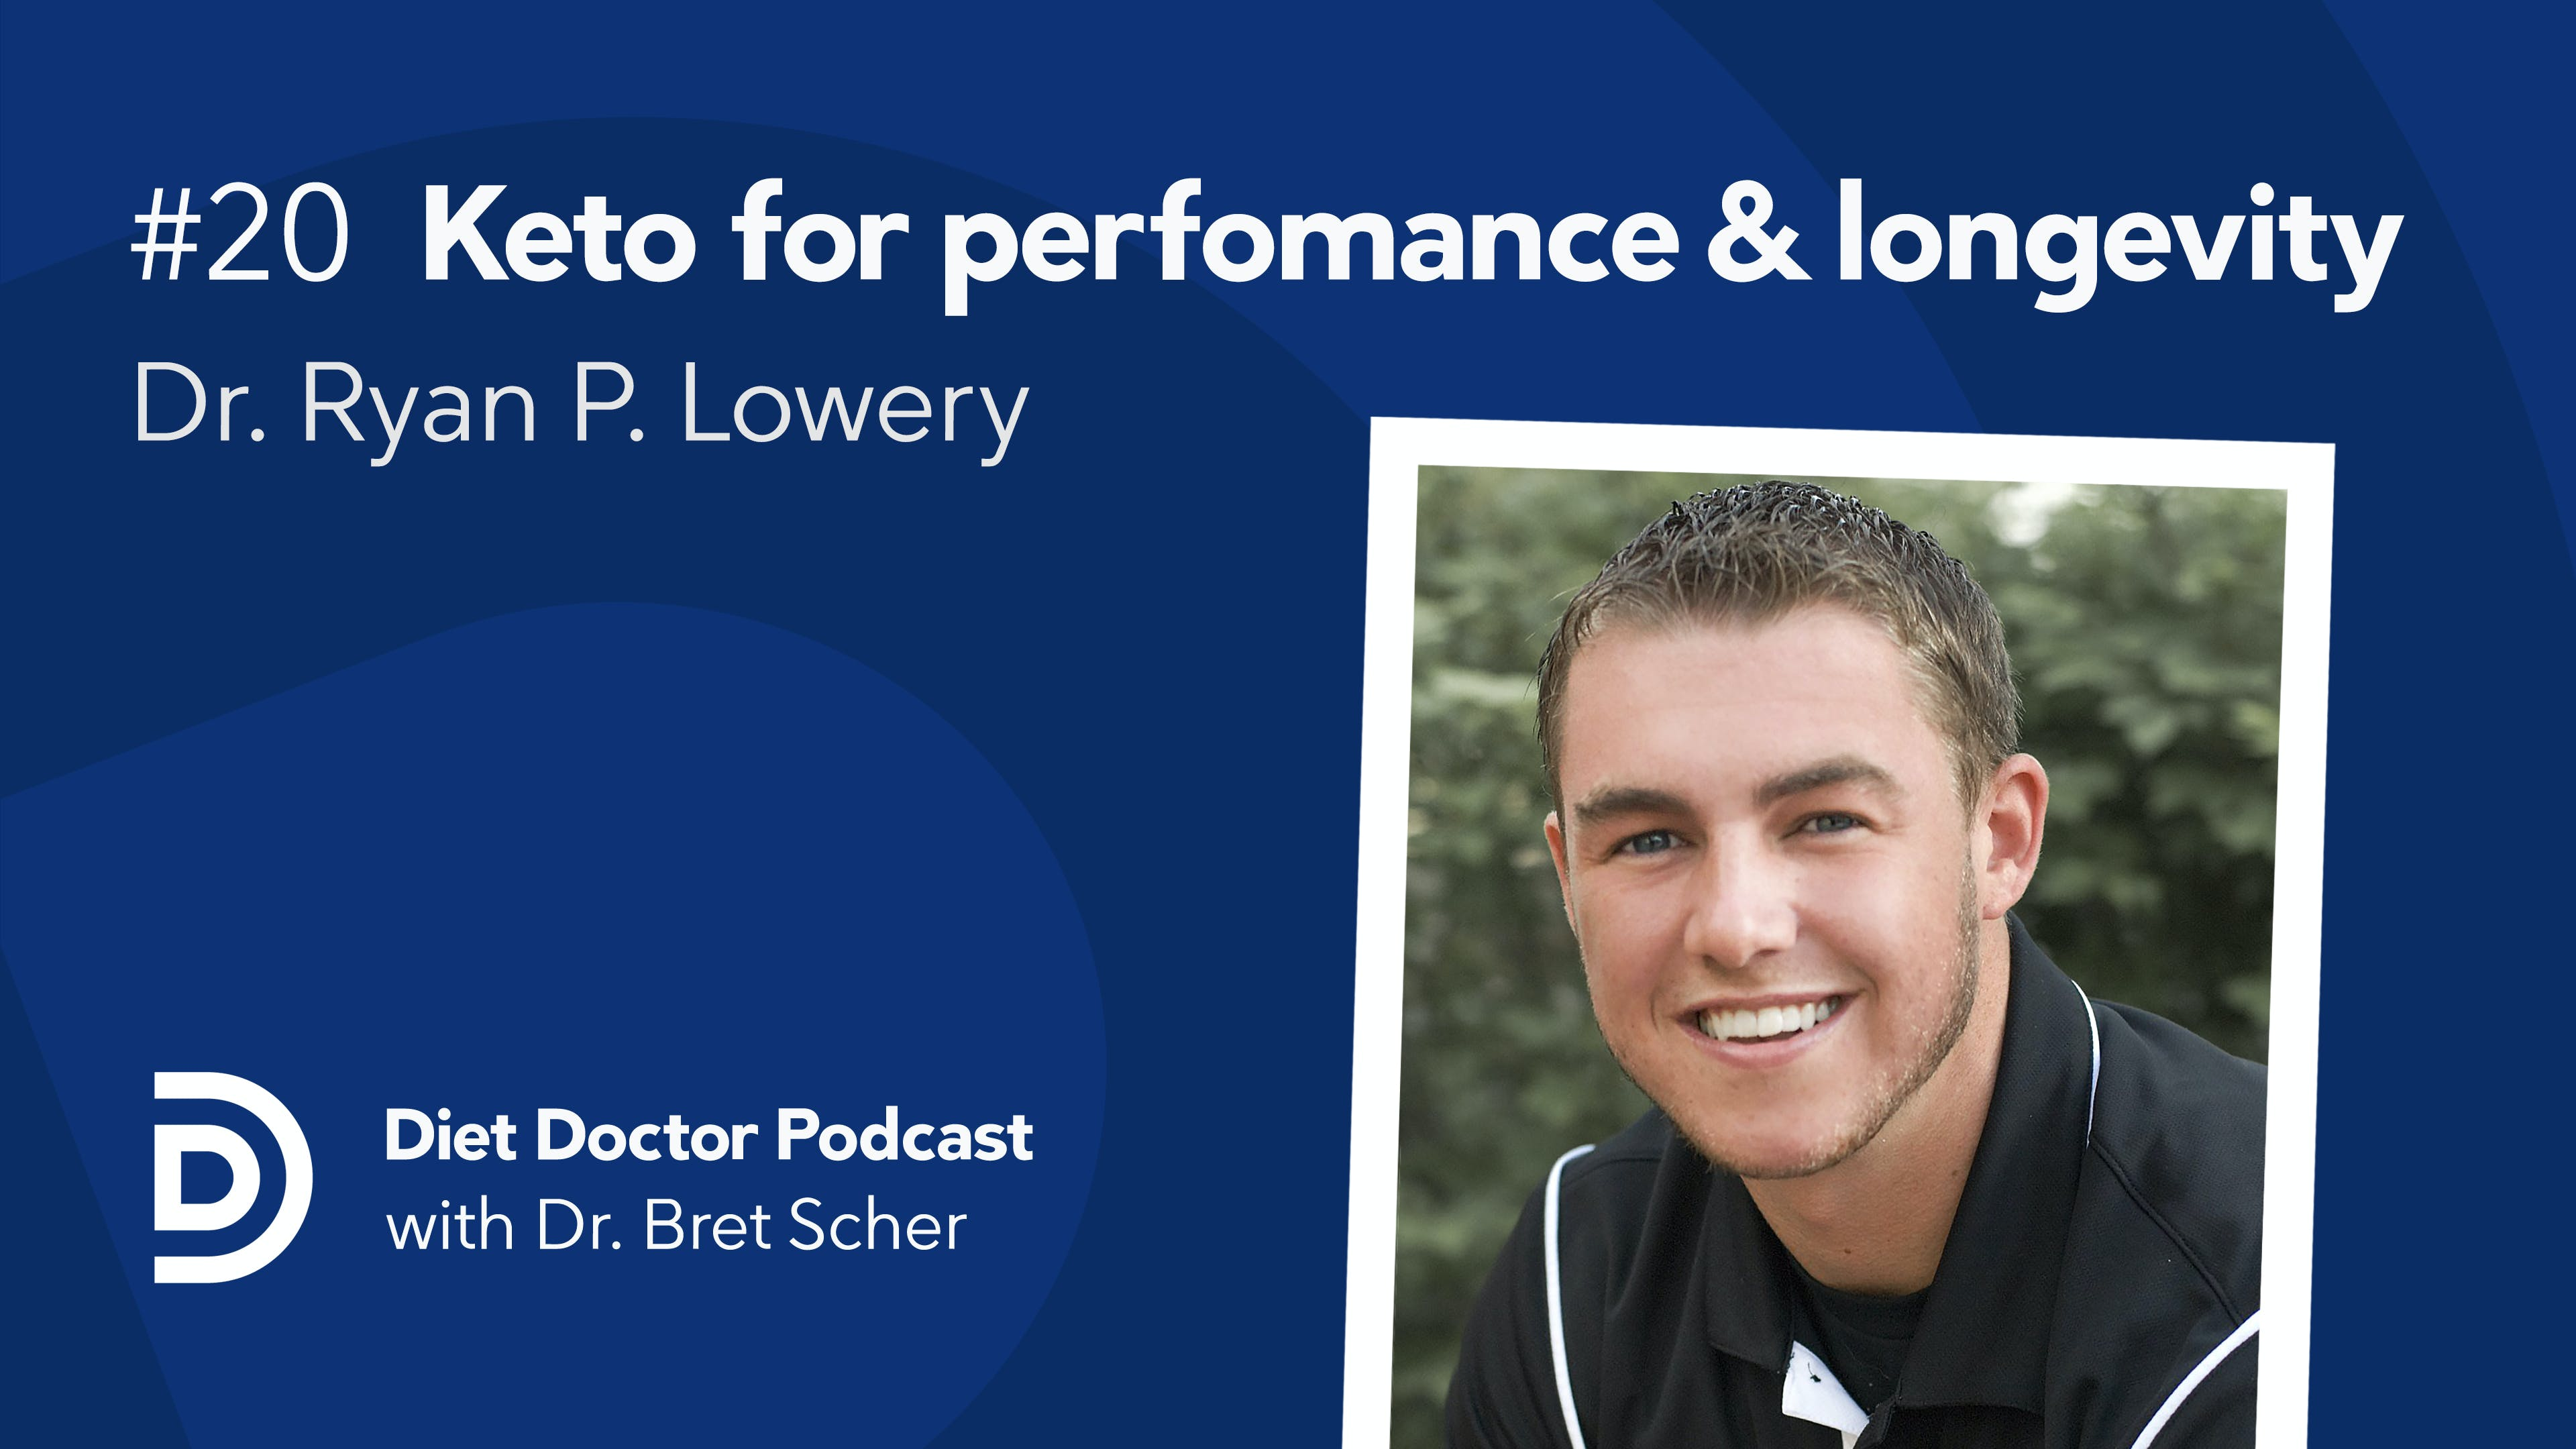 Podcast #20 Dr. Ryan Lowery